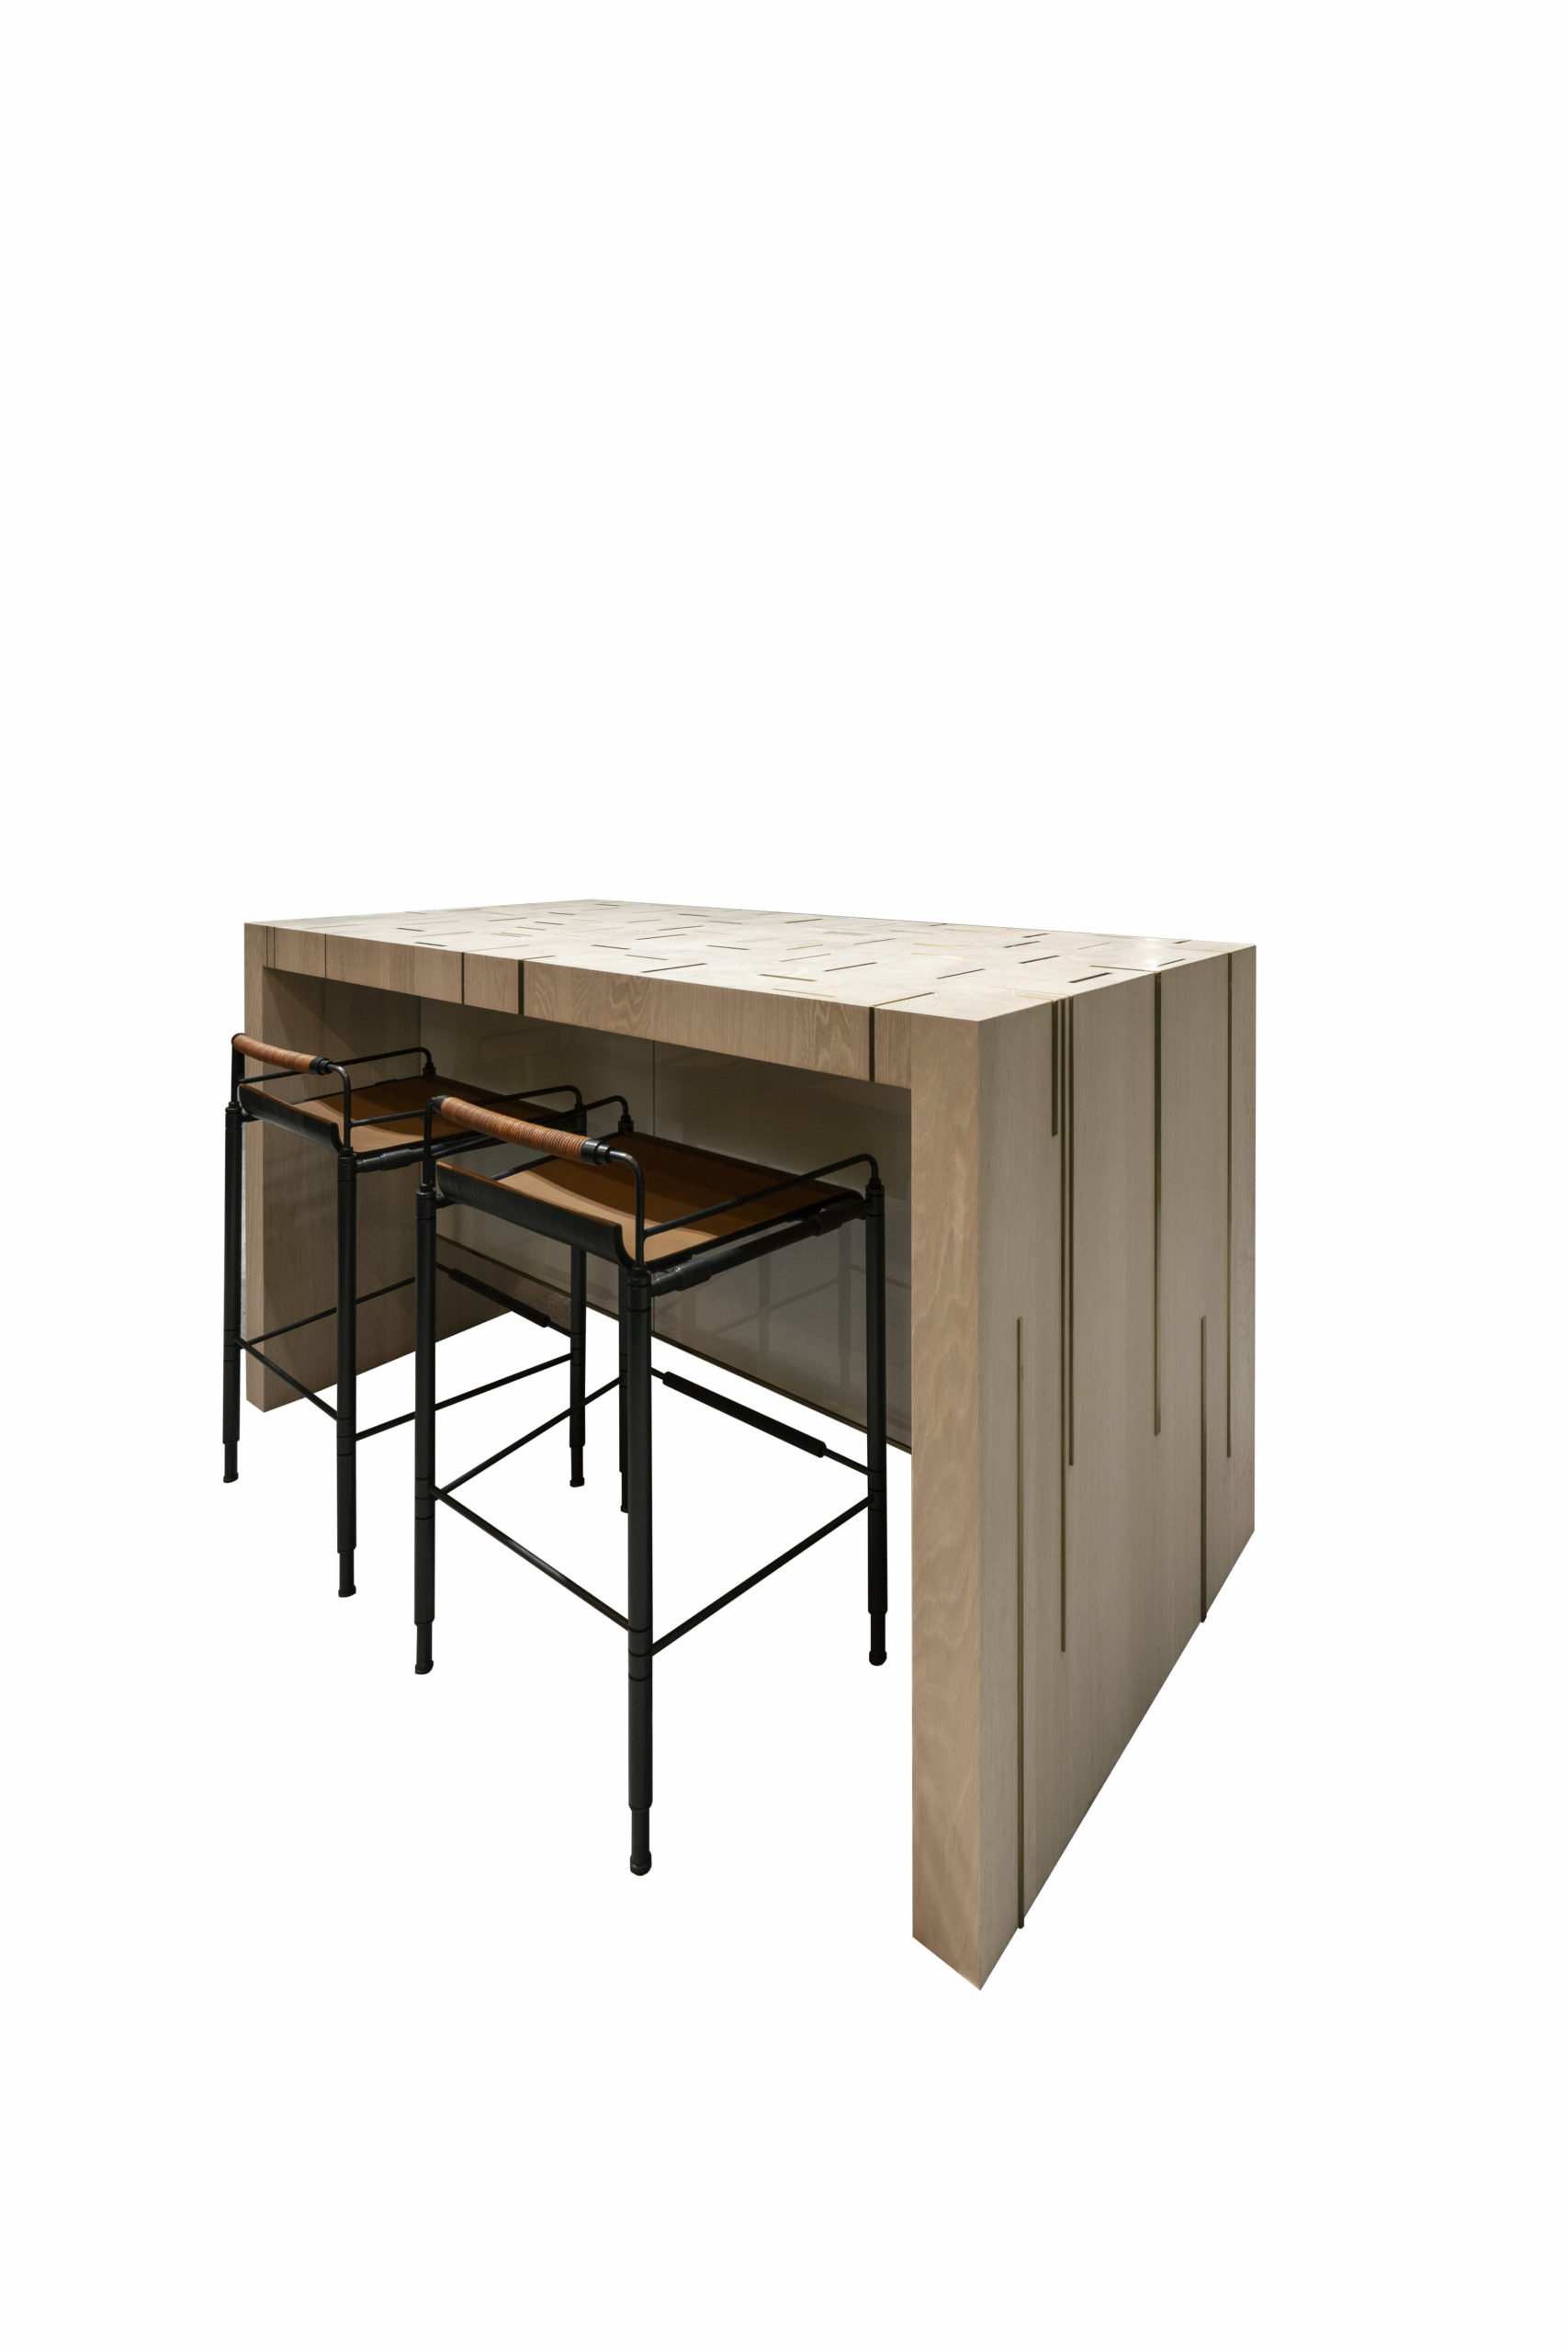 amuneal_products_WNWN_NYDC_1Inlay-Island-with-chairs-whited-out-icff_2019_0184-scaled-1